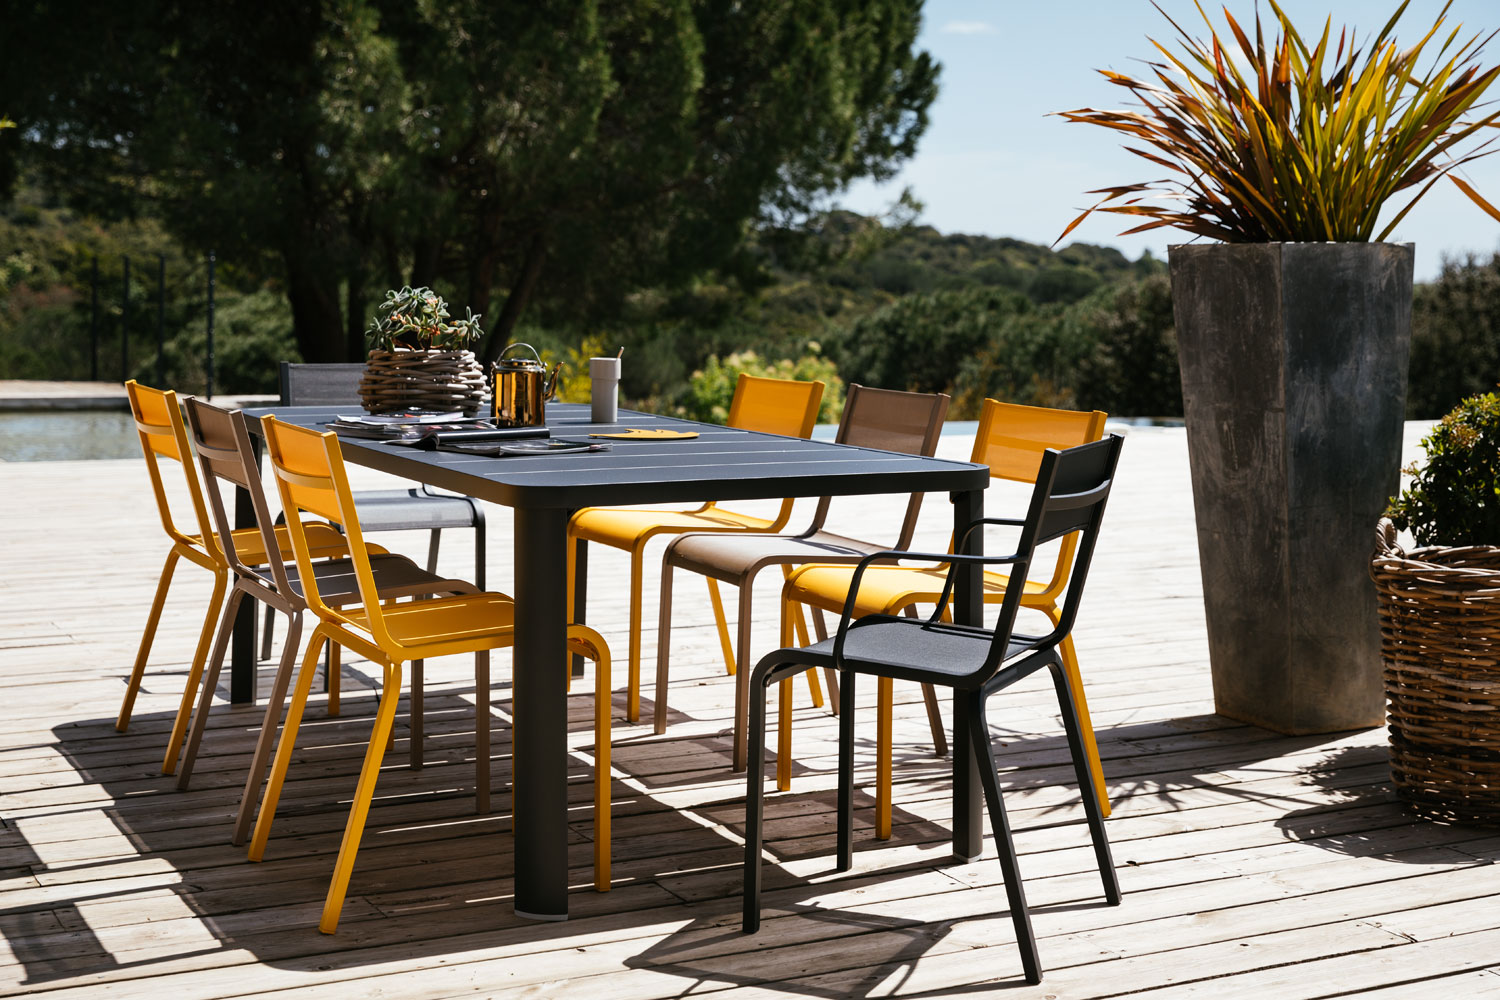 table de jardin, chaise de jardin, table metal, table de jardin 8 personnes, chaise terrasse